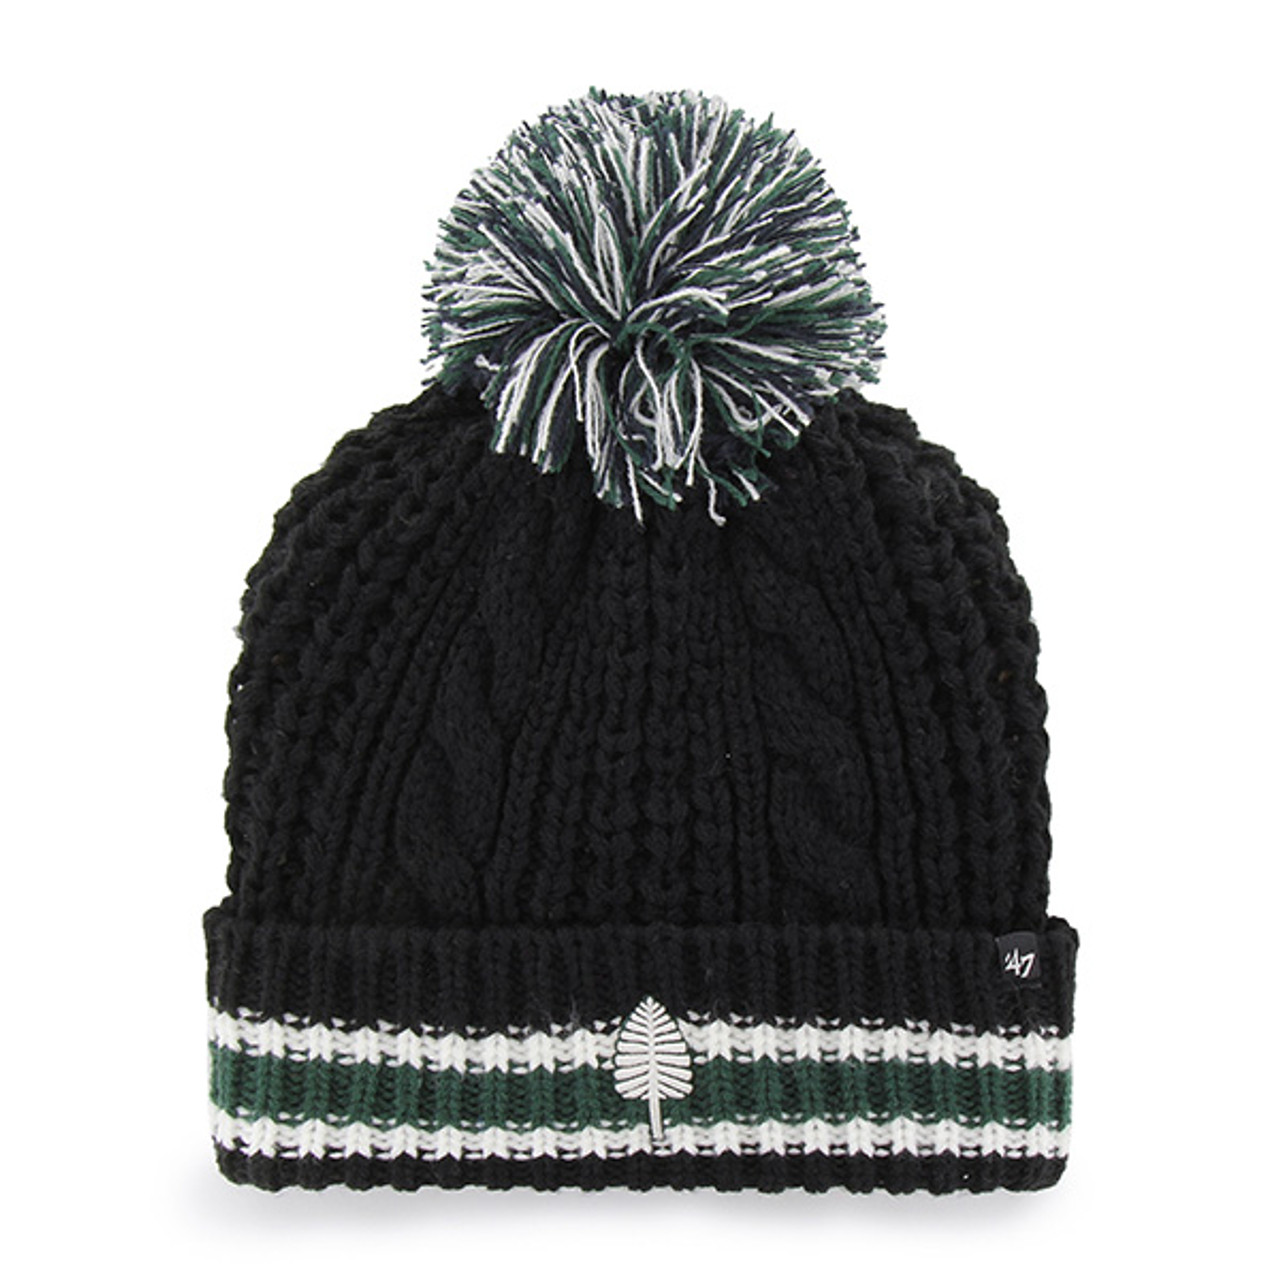 e20be166404 Black winter hat with green  Lone Pine  on brim with a green stripe and